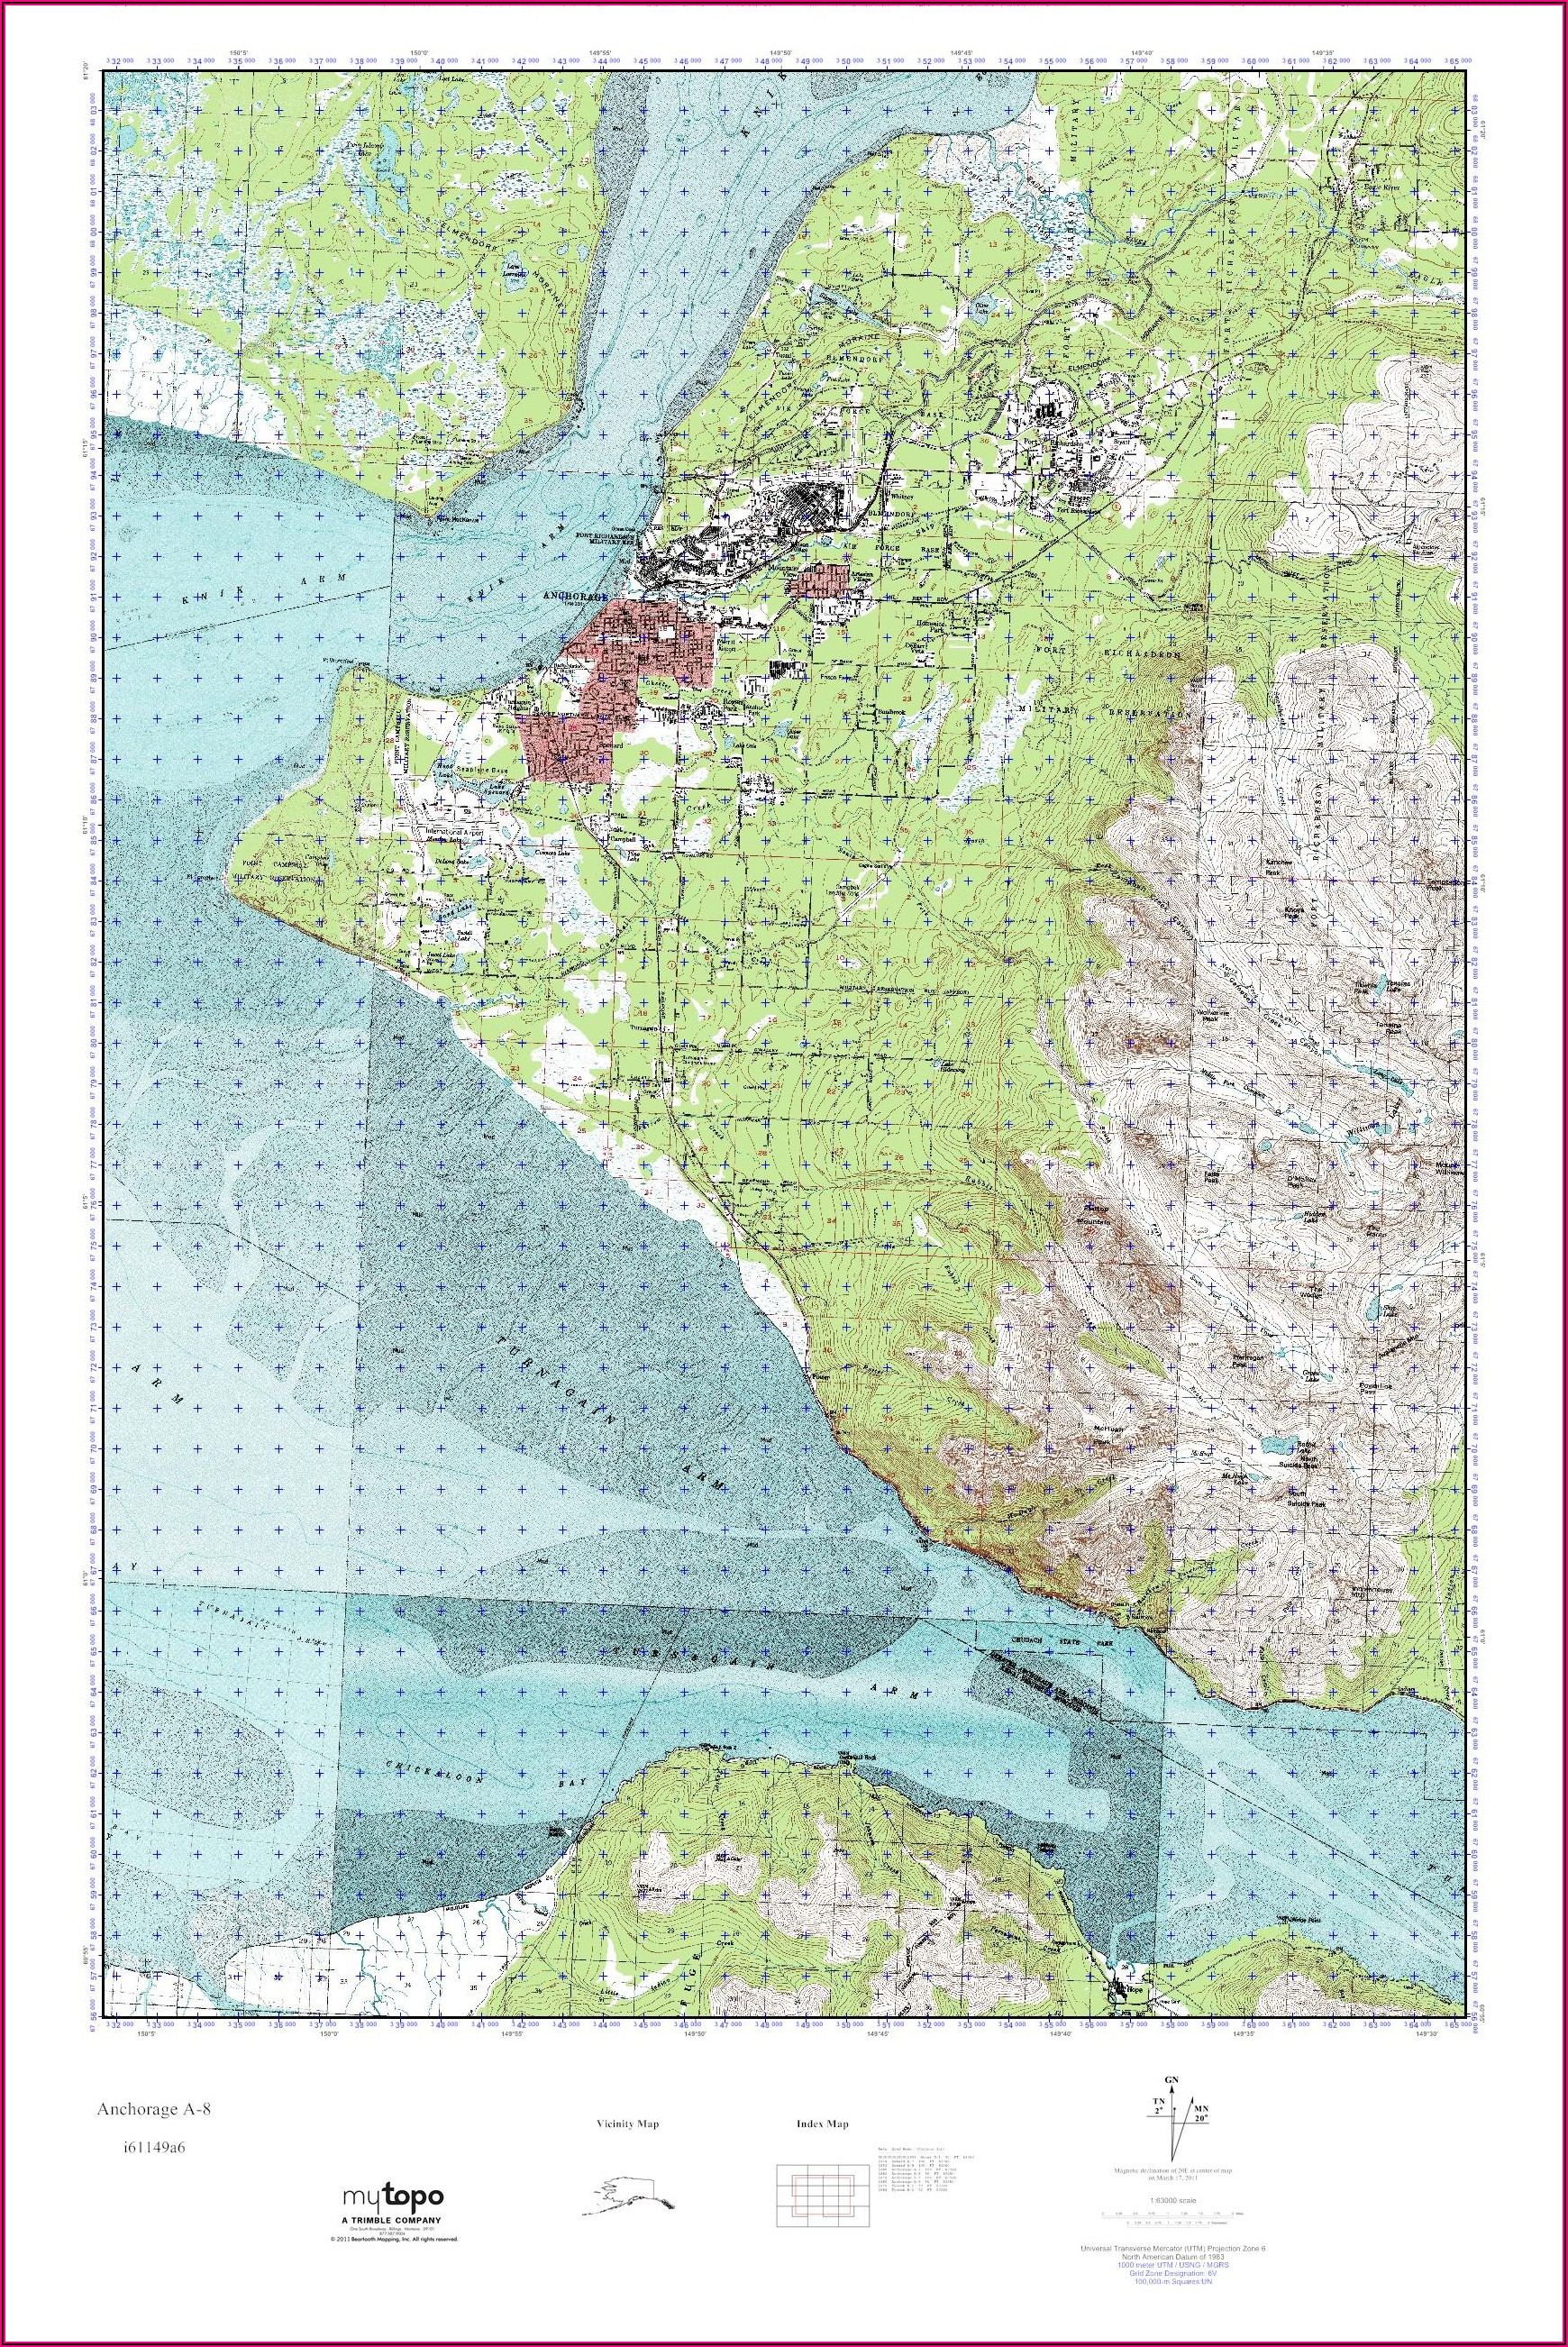 Where To Buy Topo Maps In Anchorage